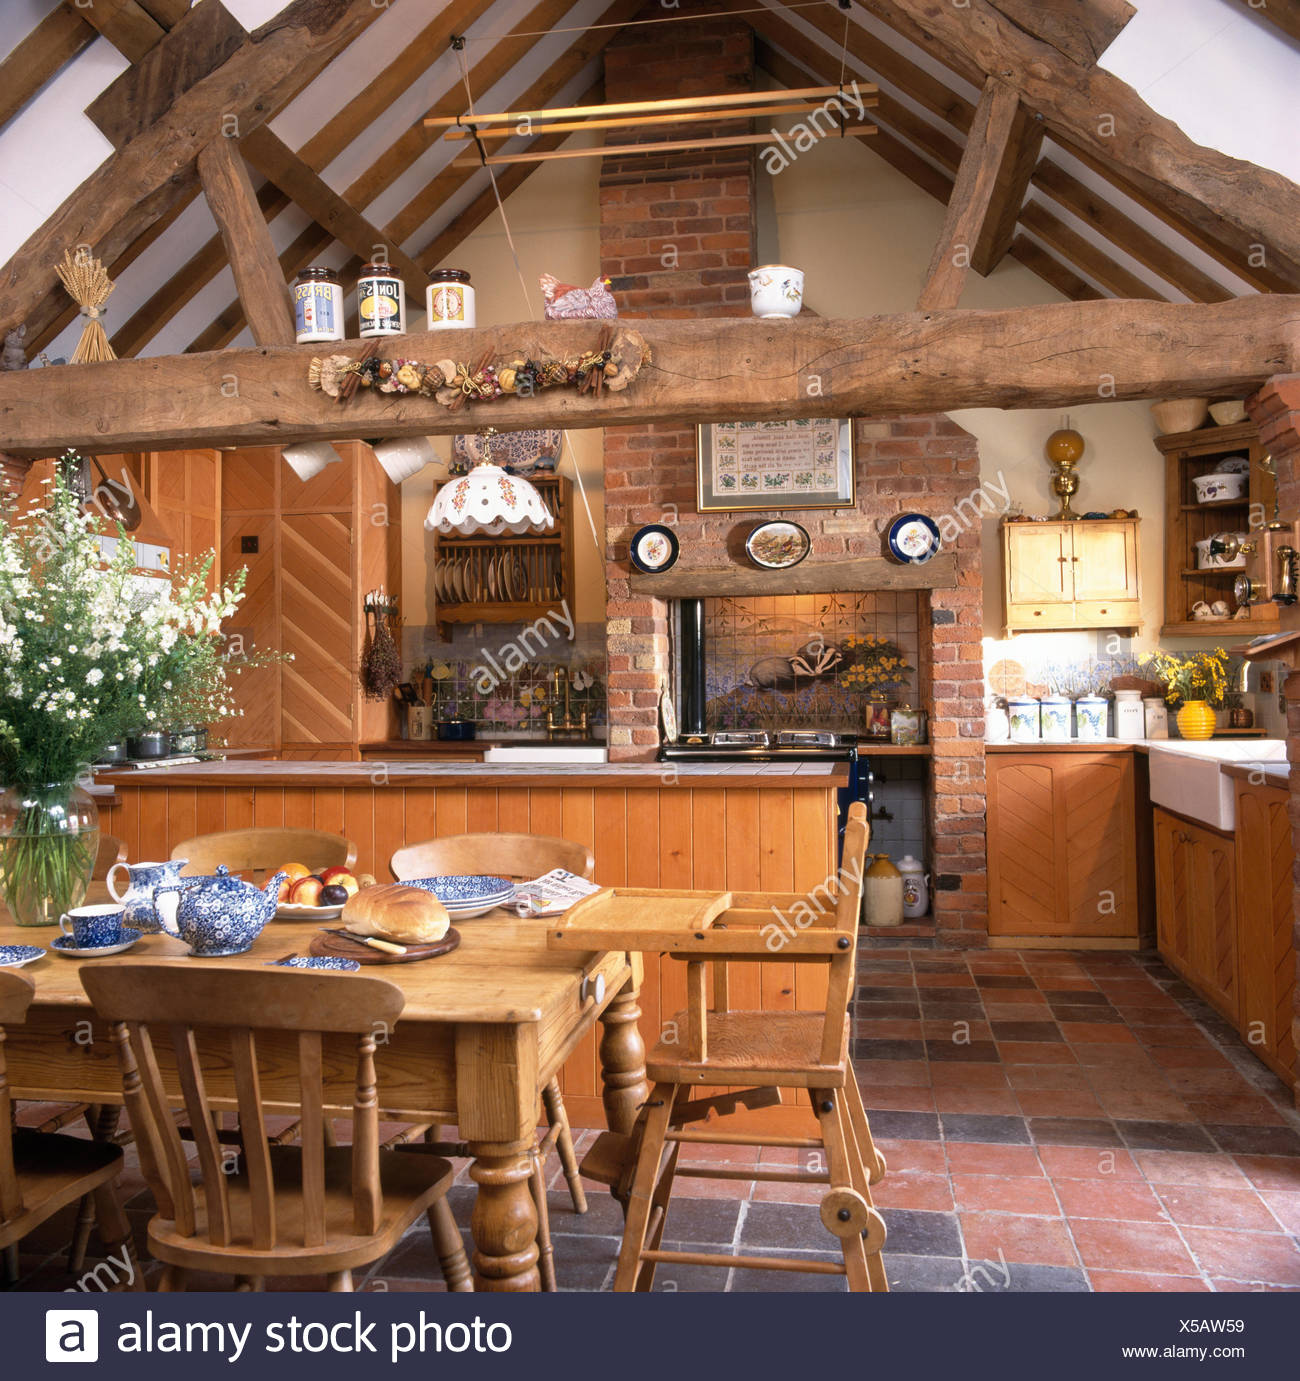 Wooden chairs and childu0027s high chair at pine table in barn conversion kitchen with rustic wooden beams & Wooden chairs and childu0027s high chair at pine table in barn ...